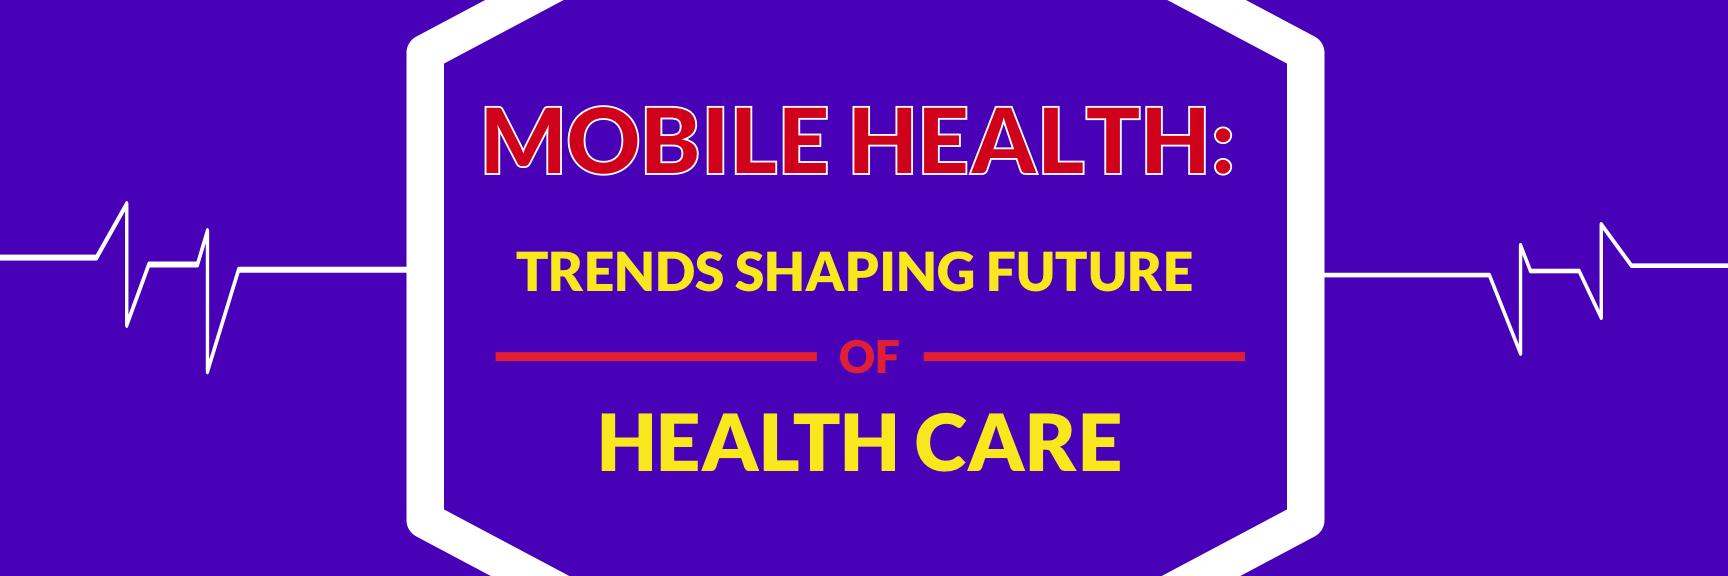 the future trends in healthcare Physicians foundation researches current healthcare industry trends and analysis to aid primary care physicians to deliver quality care to their patients.